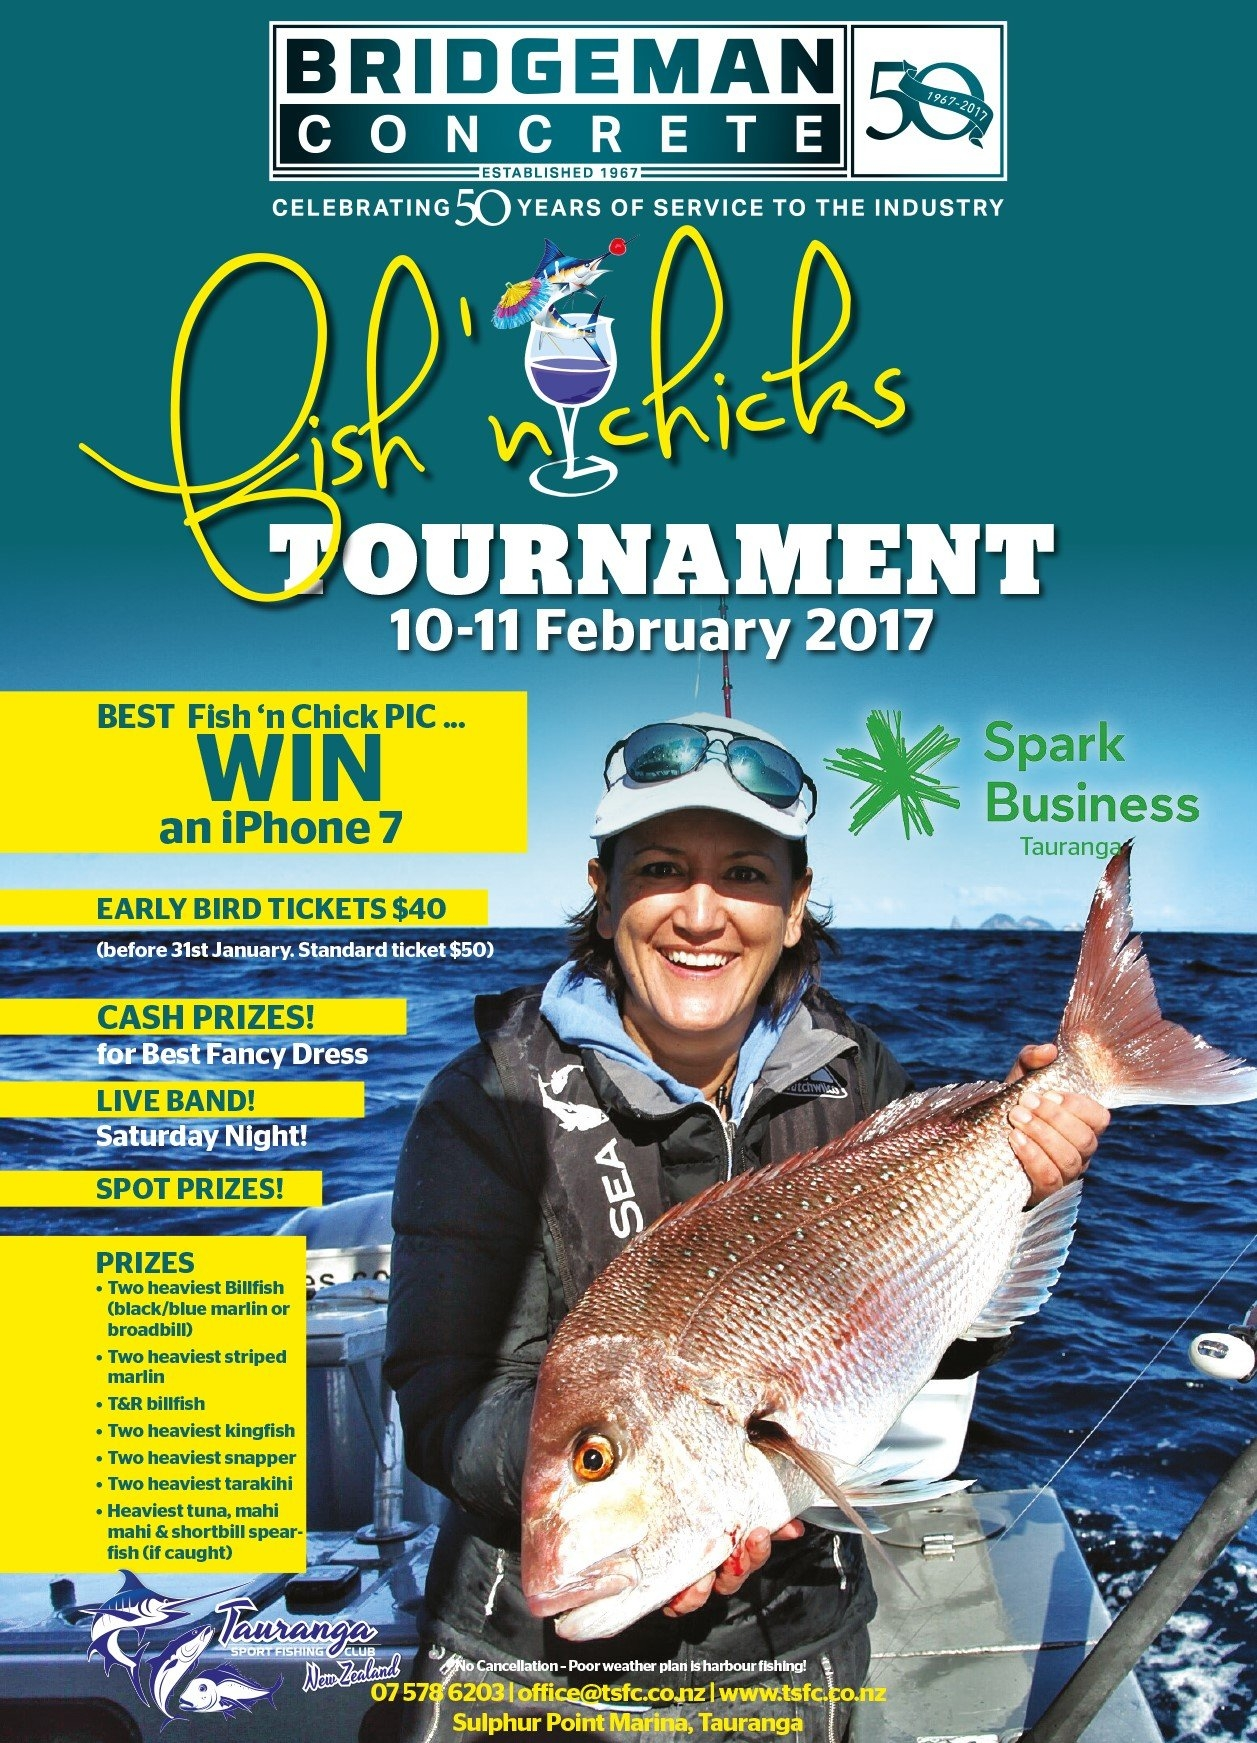 Bridgeman Fish N Chicks Tournament 10-11Th February 2017 - Tauranga Fish N Chix Calendar 2019